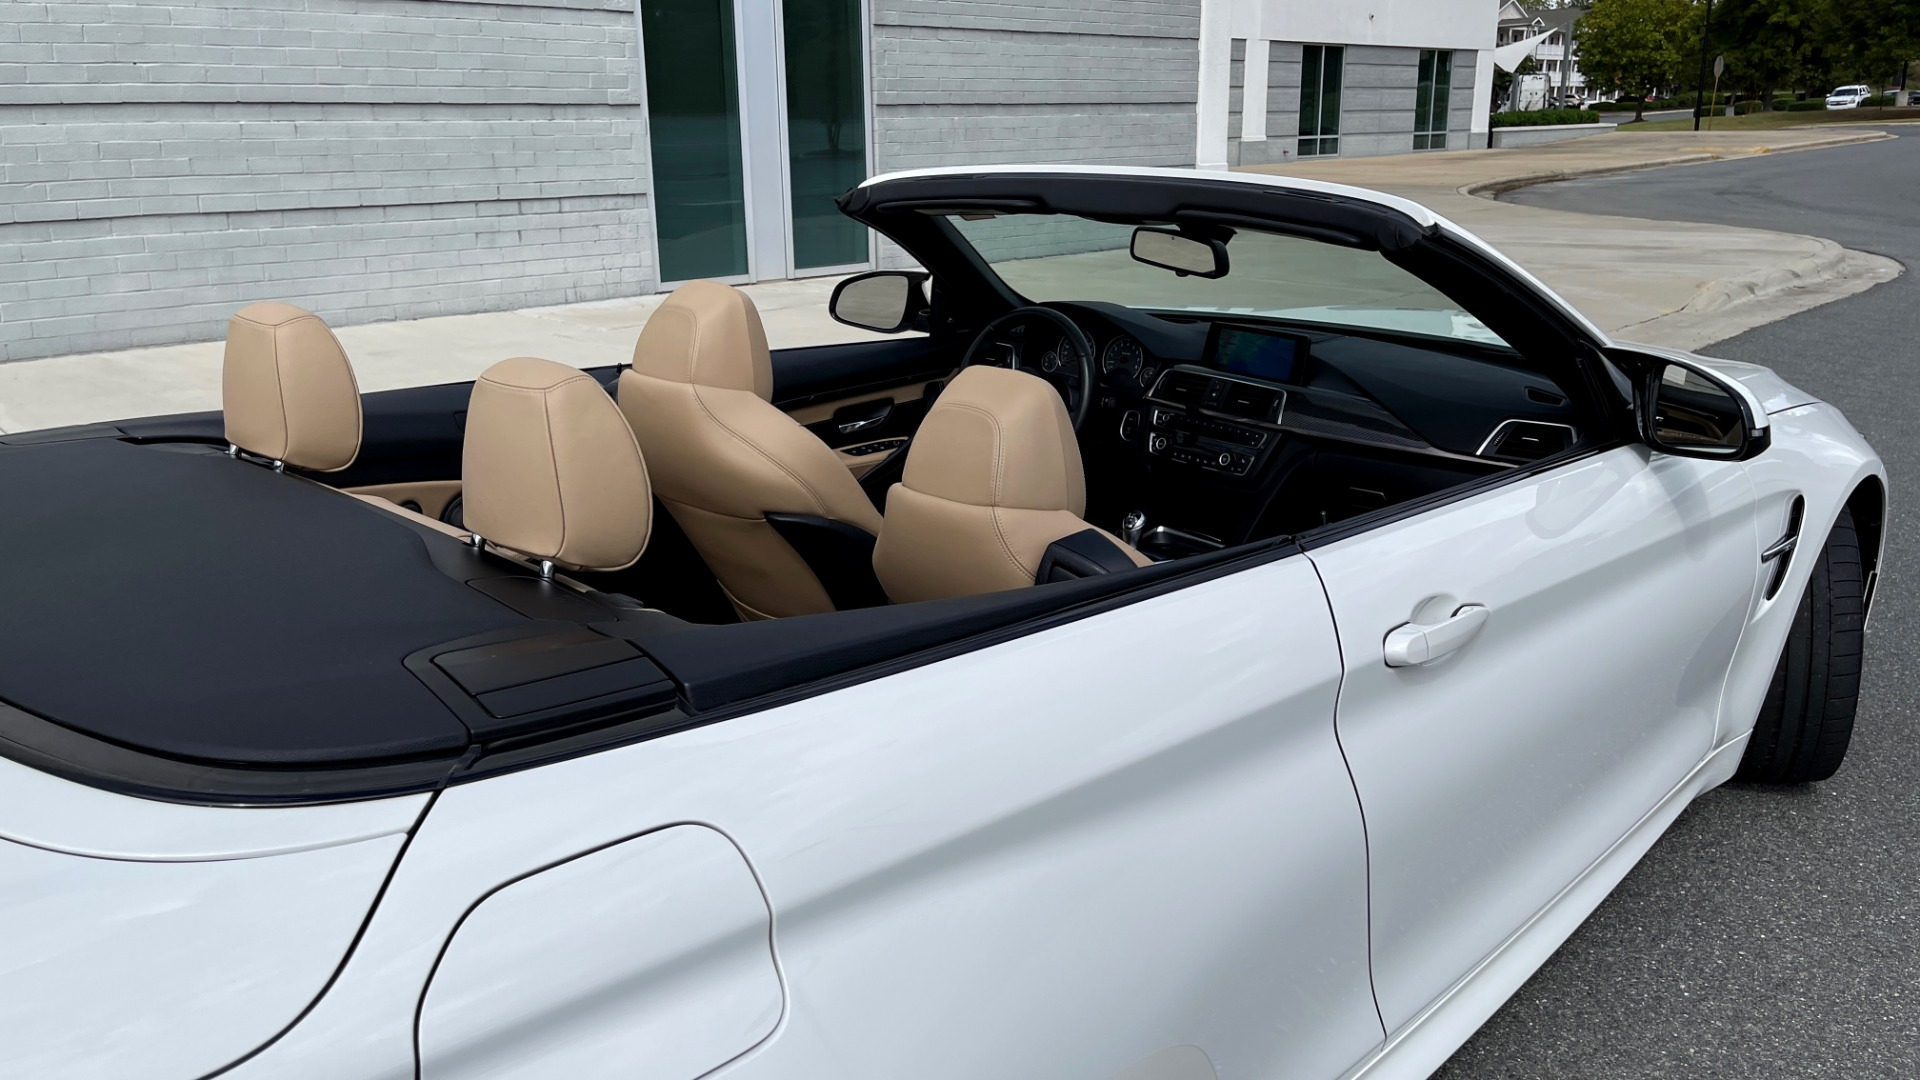 Used 2016 BMW M4 CONVERTIBLE 3.0L / 7-SPD AUTO / EXECUTIVE / ADAPT M SUSP / REARVIEW for sale $53,999 at Formula Imports in Charlotte NC 28227 75